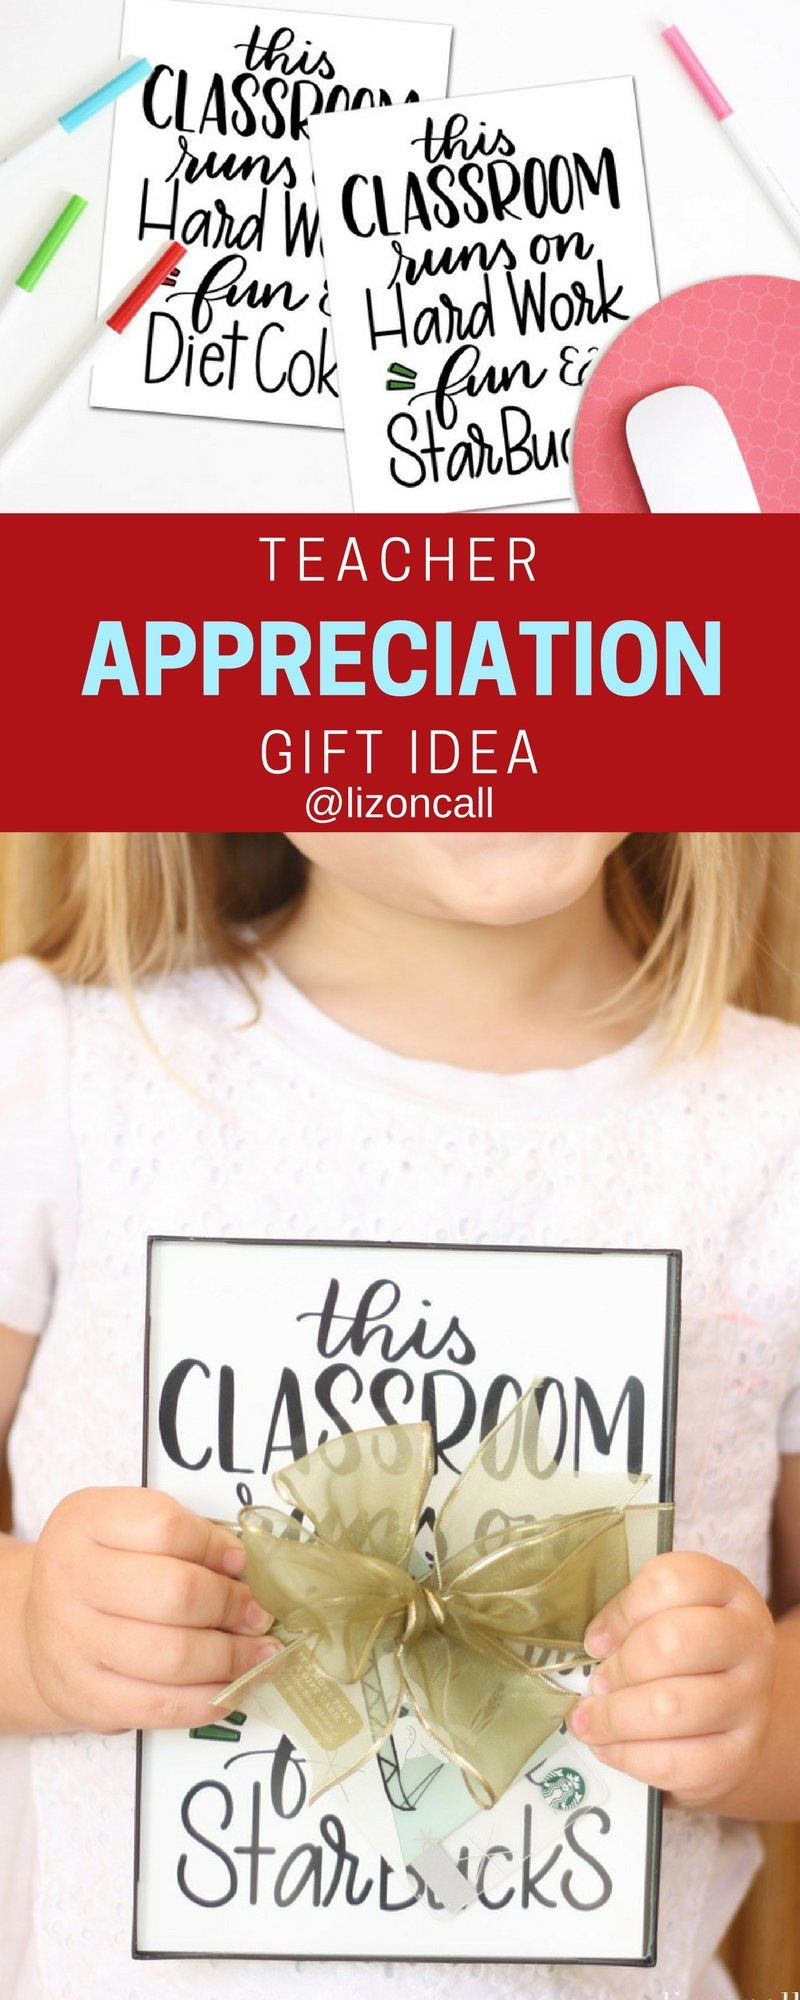 Give teachers what they want this year and send them a gift card.  Make your simple teacher appreciation gift idea into something extra special with this cute free printable. #teacherappreciation #freeprintable #giftidea